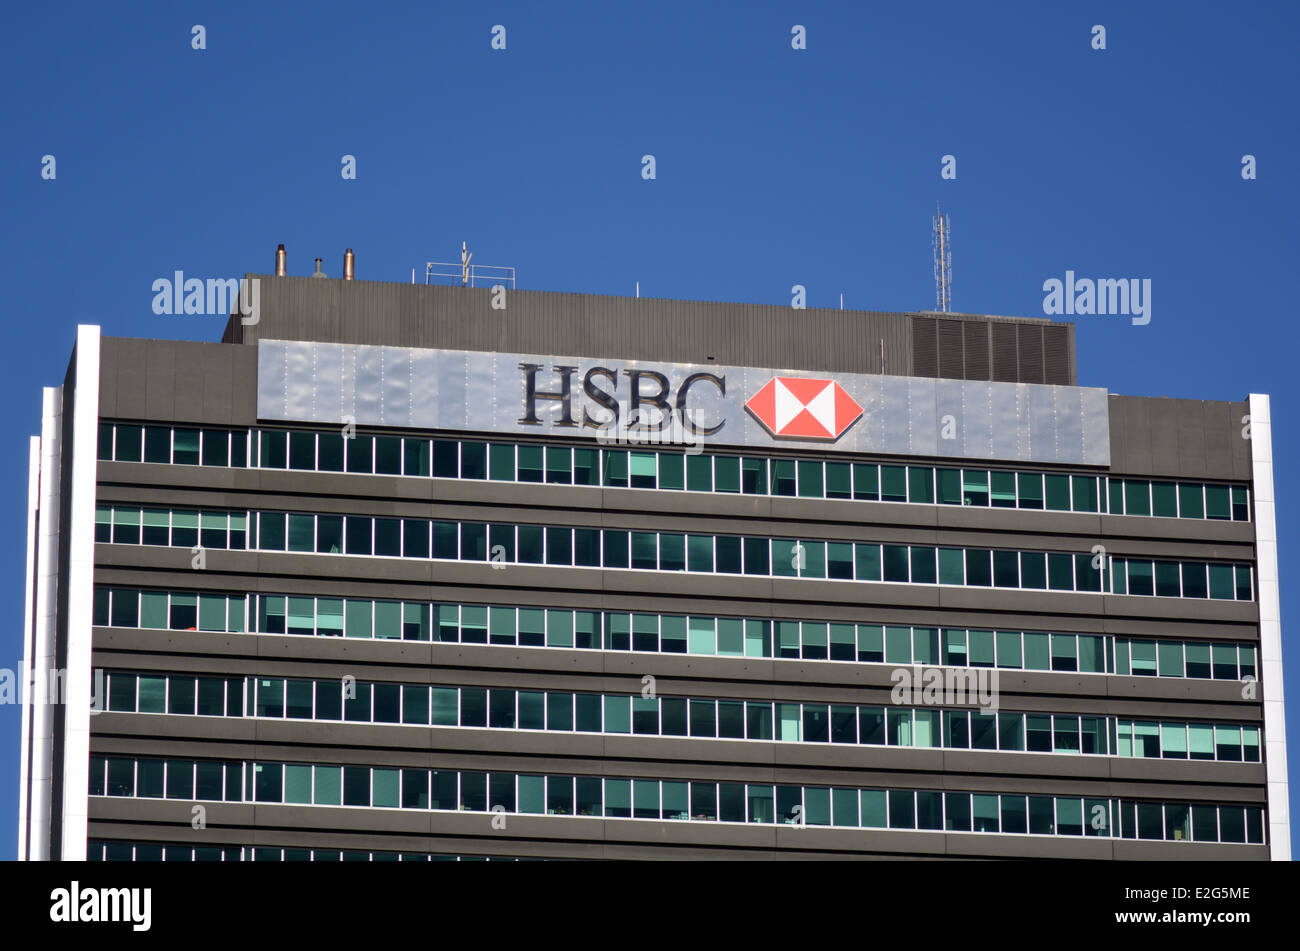 HSBC Bank New Zealand branch in Auckland, New Zealand. - Stock Image